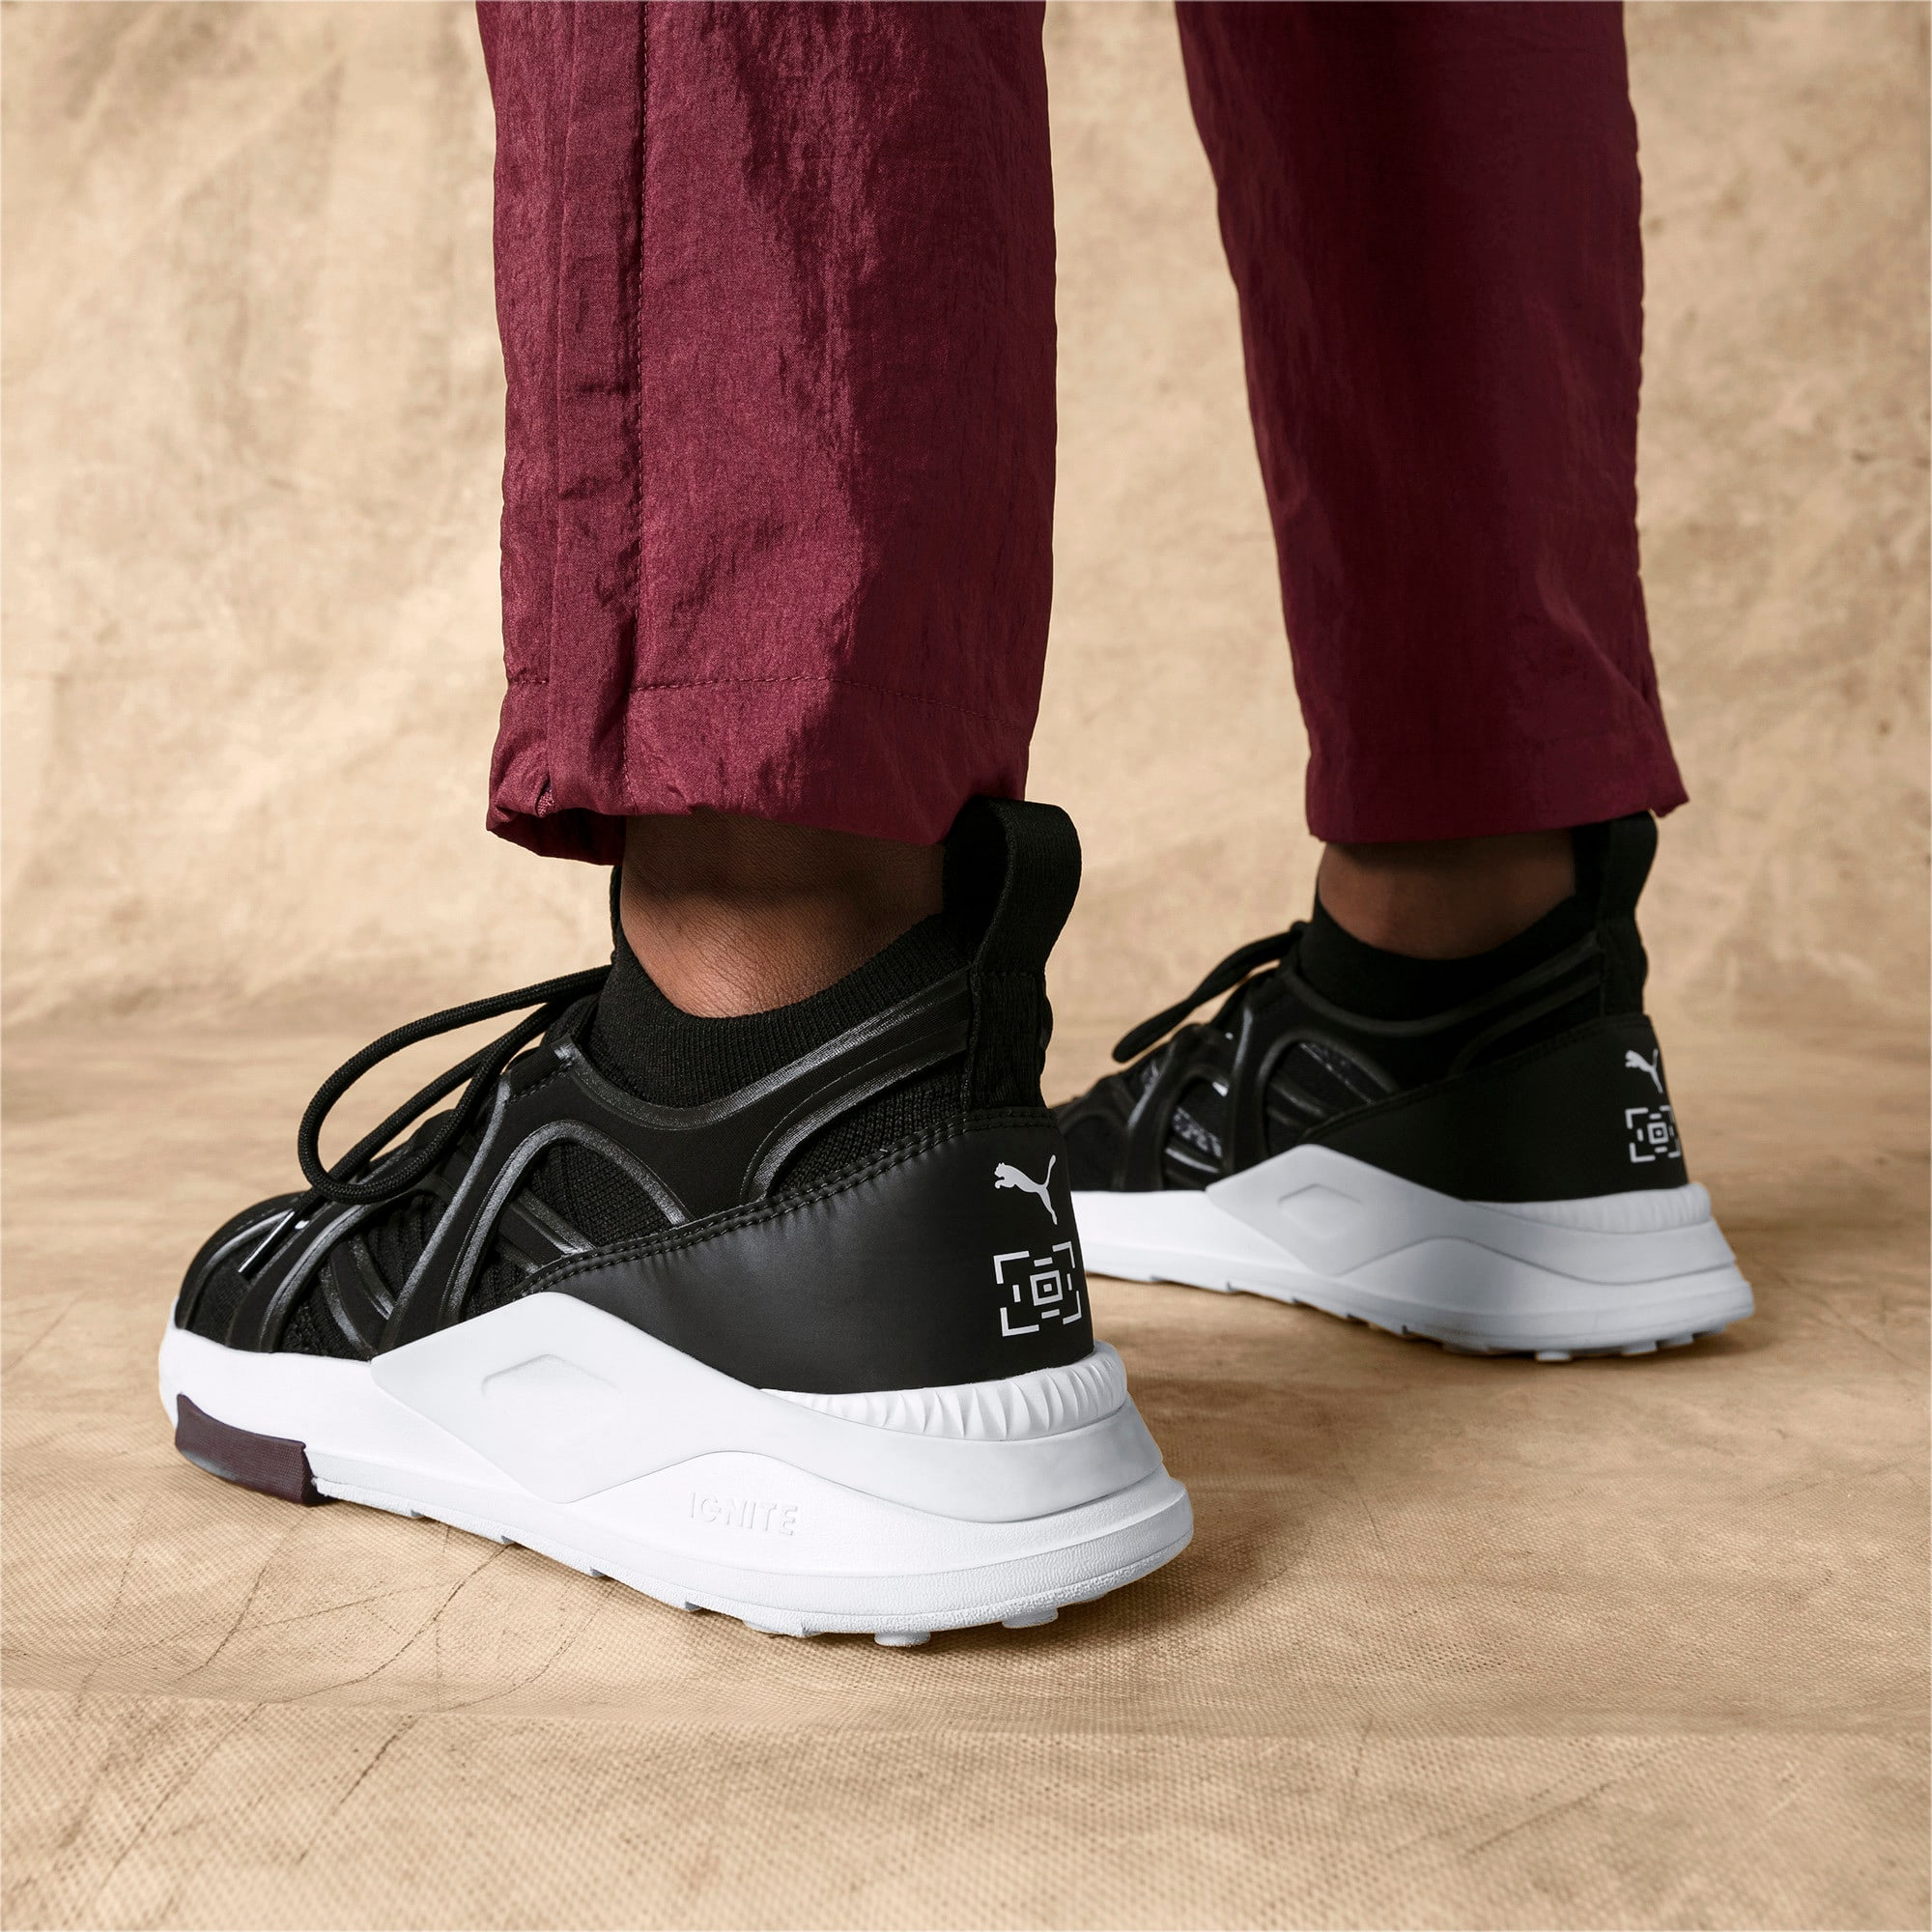 Thumbnail 3 of PUMA x LES BENJAMINS SHOKU Sneakers, Puma Black, medium